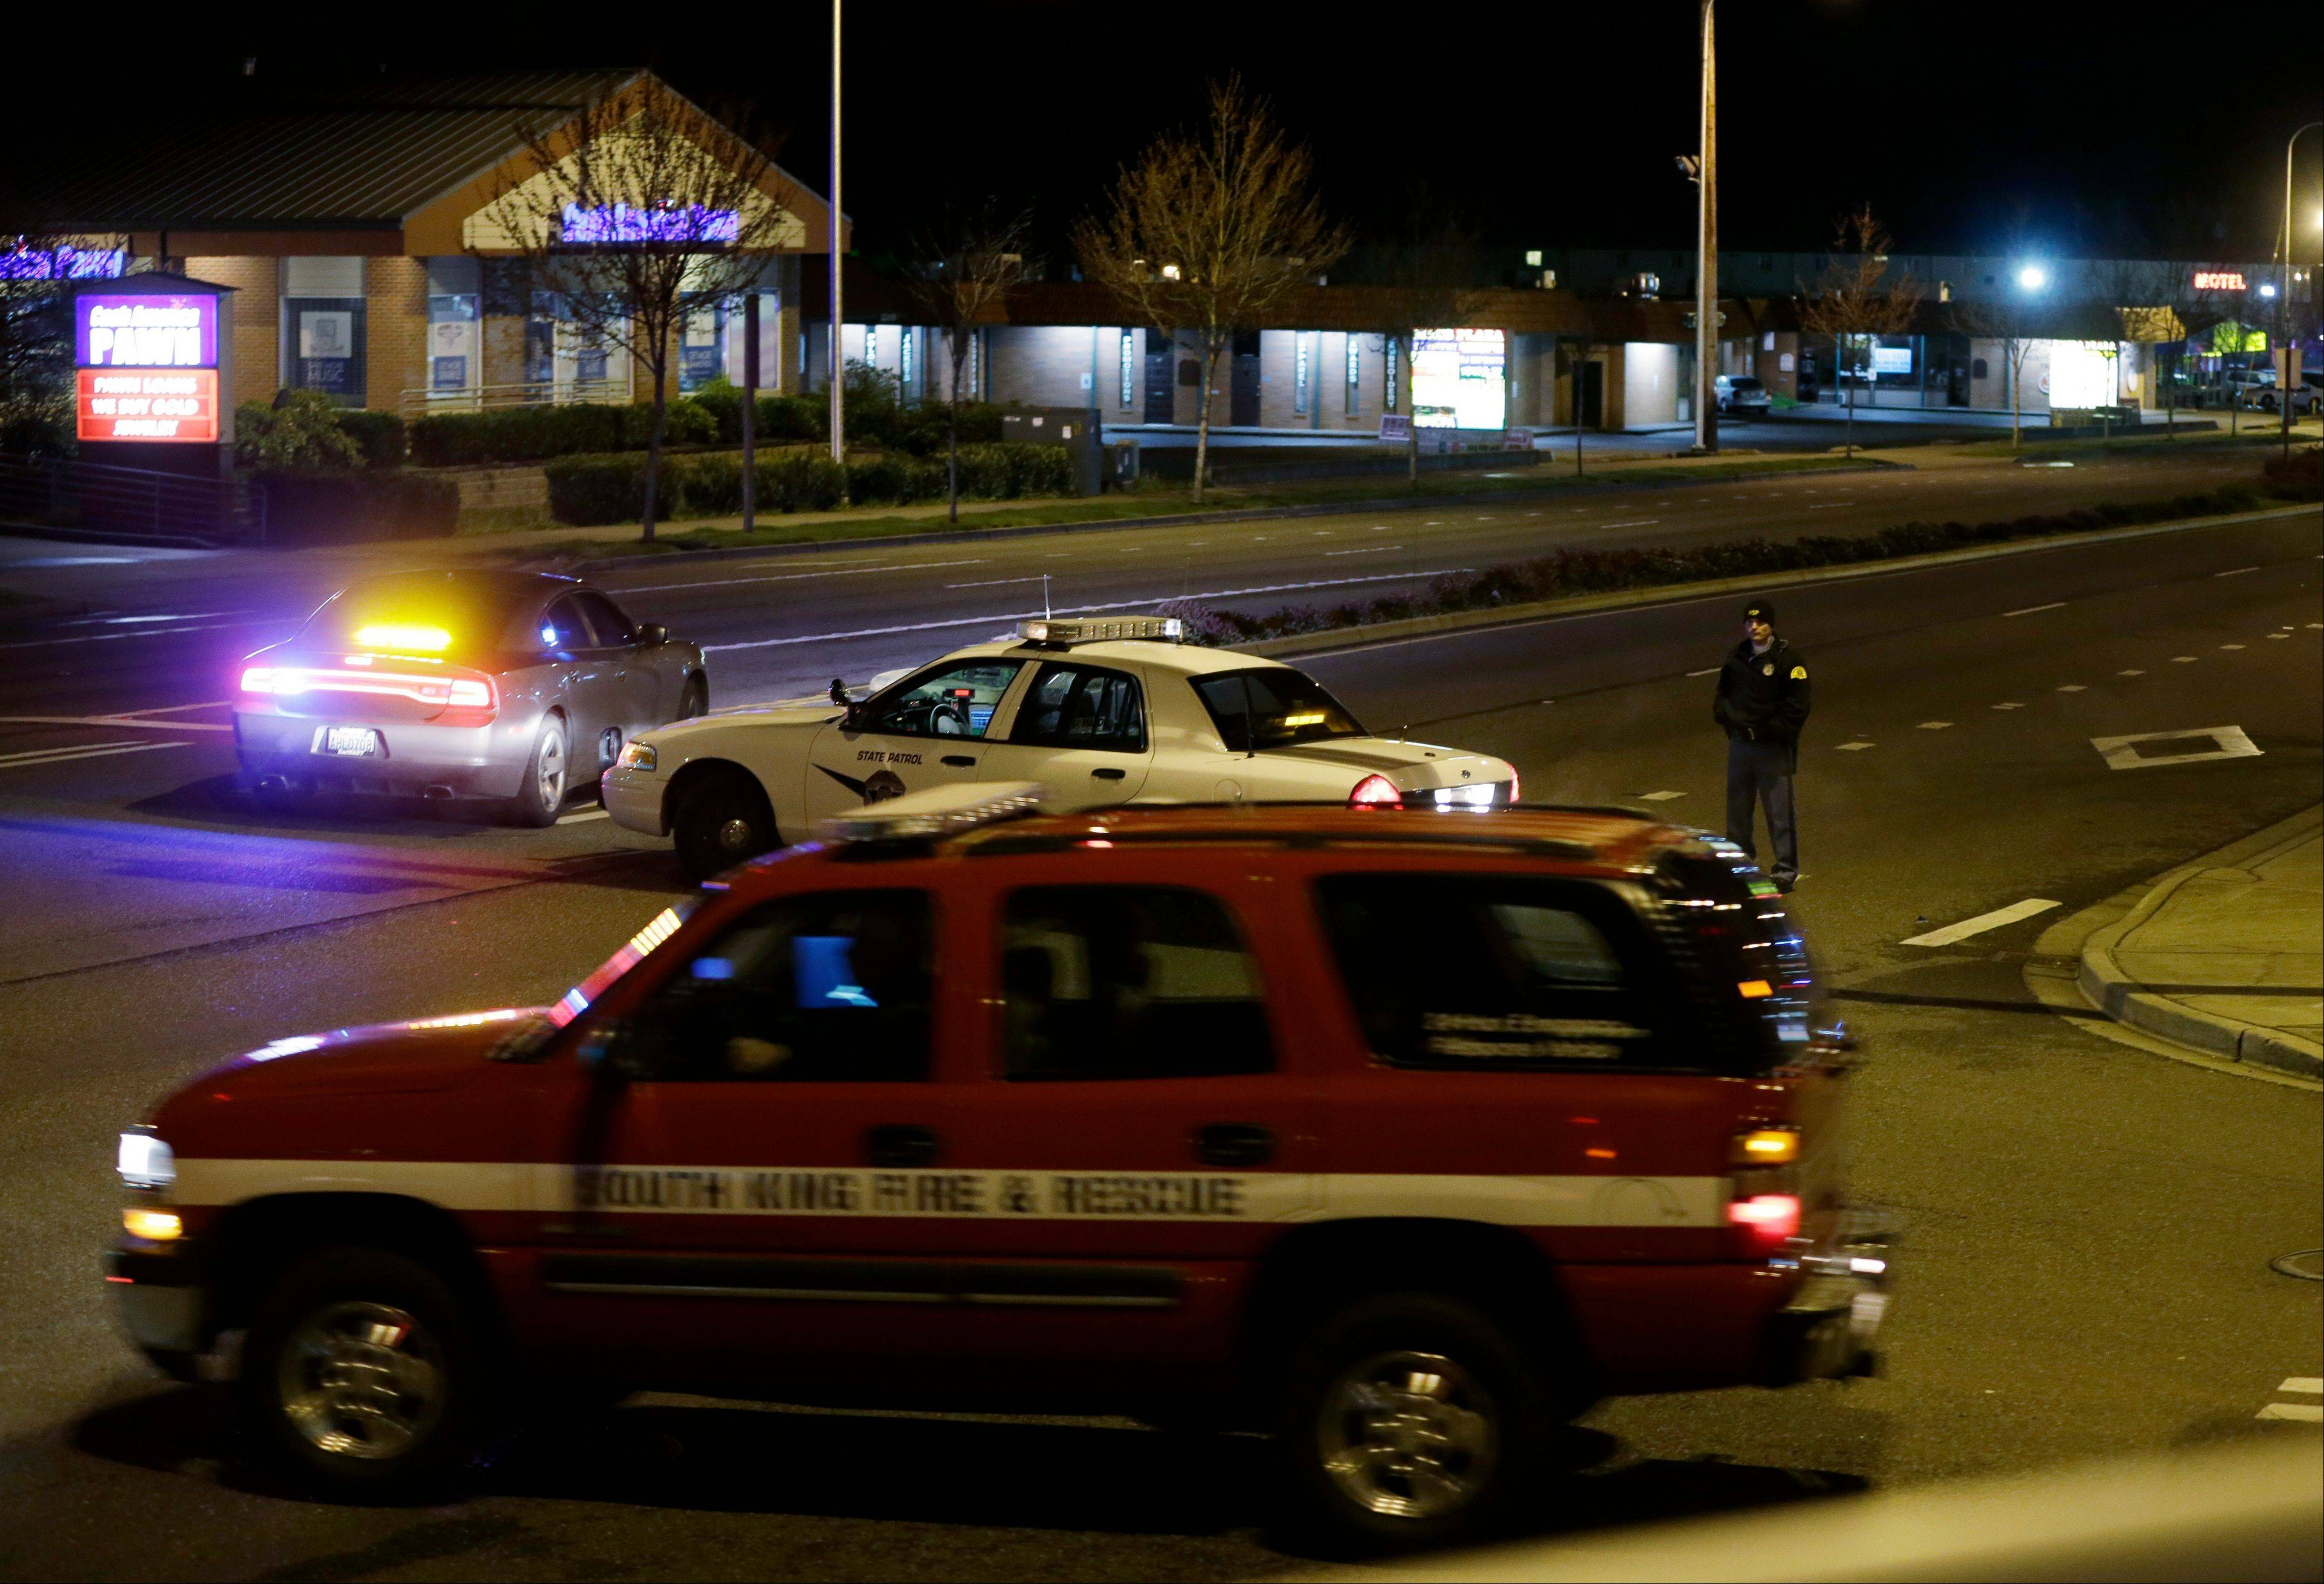 Police and fire vehicles are seen several blocks from the scene of an overnight shooting that police said left five people dead Monday at an apartment complex in Federal Way, Wash.